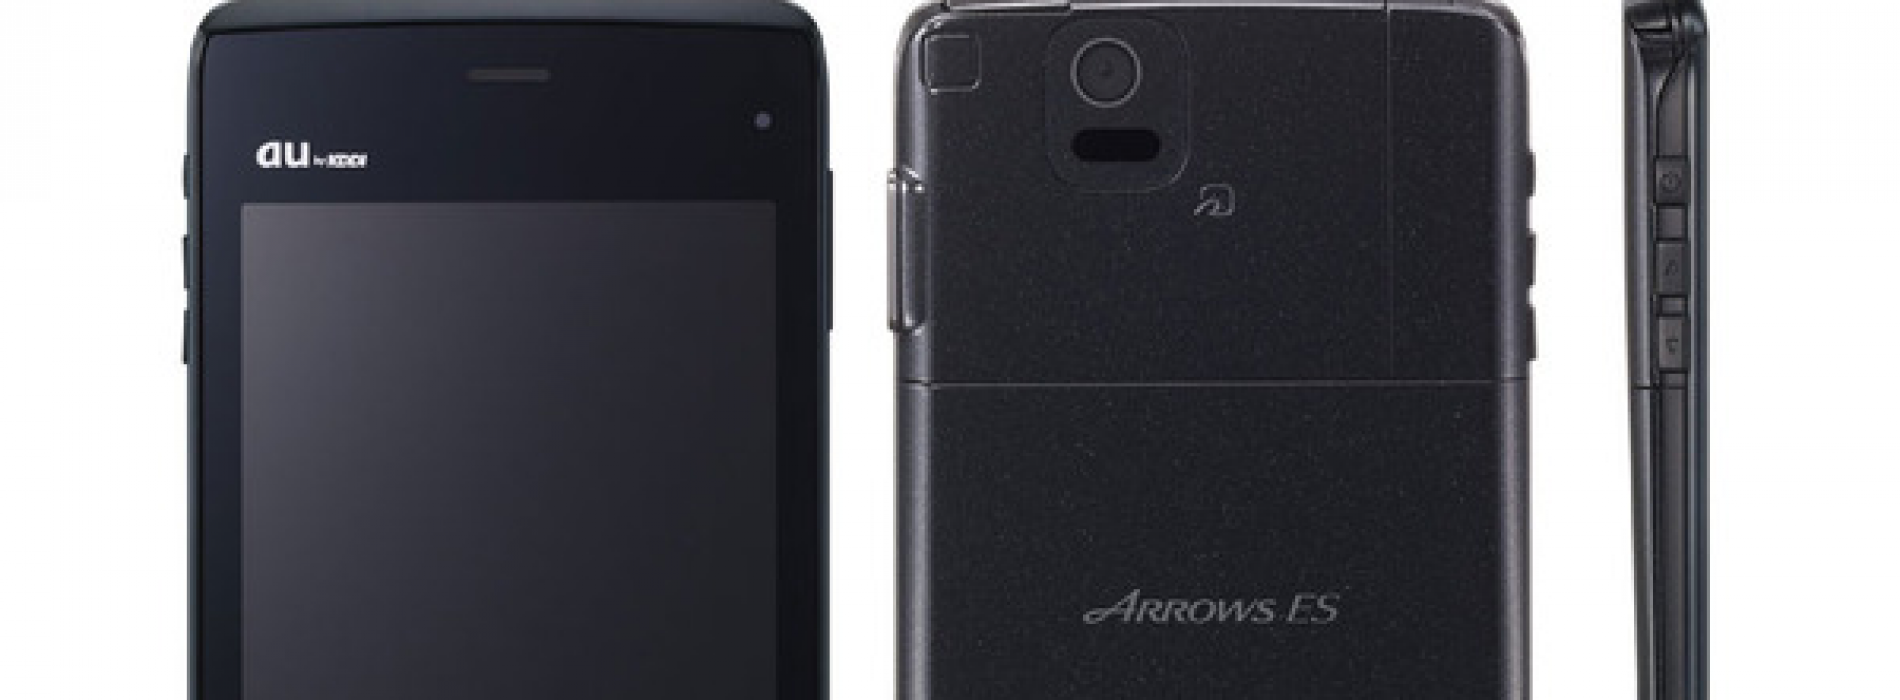 At 6.7mm thick, the Fujitsu Arrows ES IS12F makes your Droid RAZR seem chubby